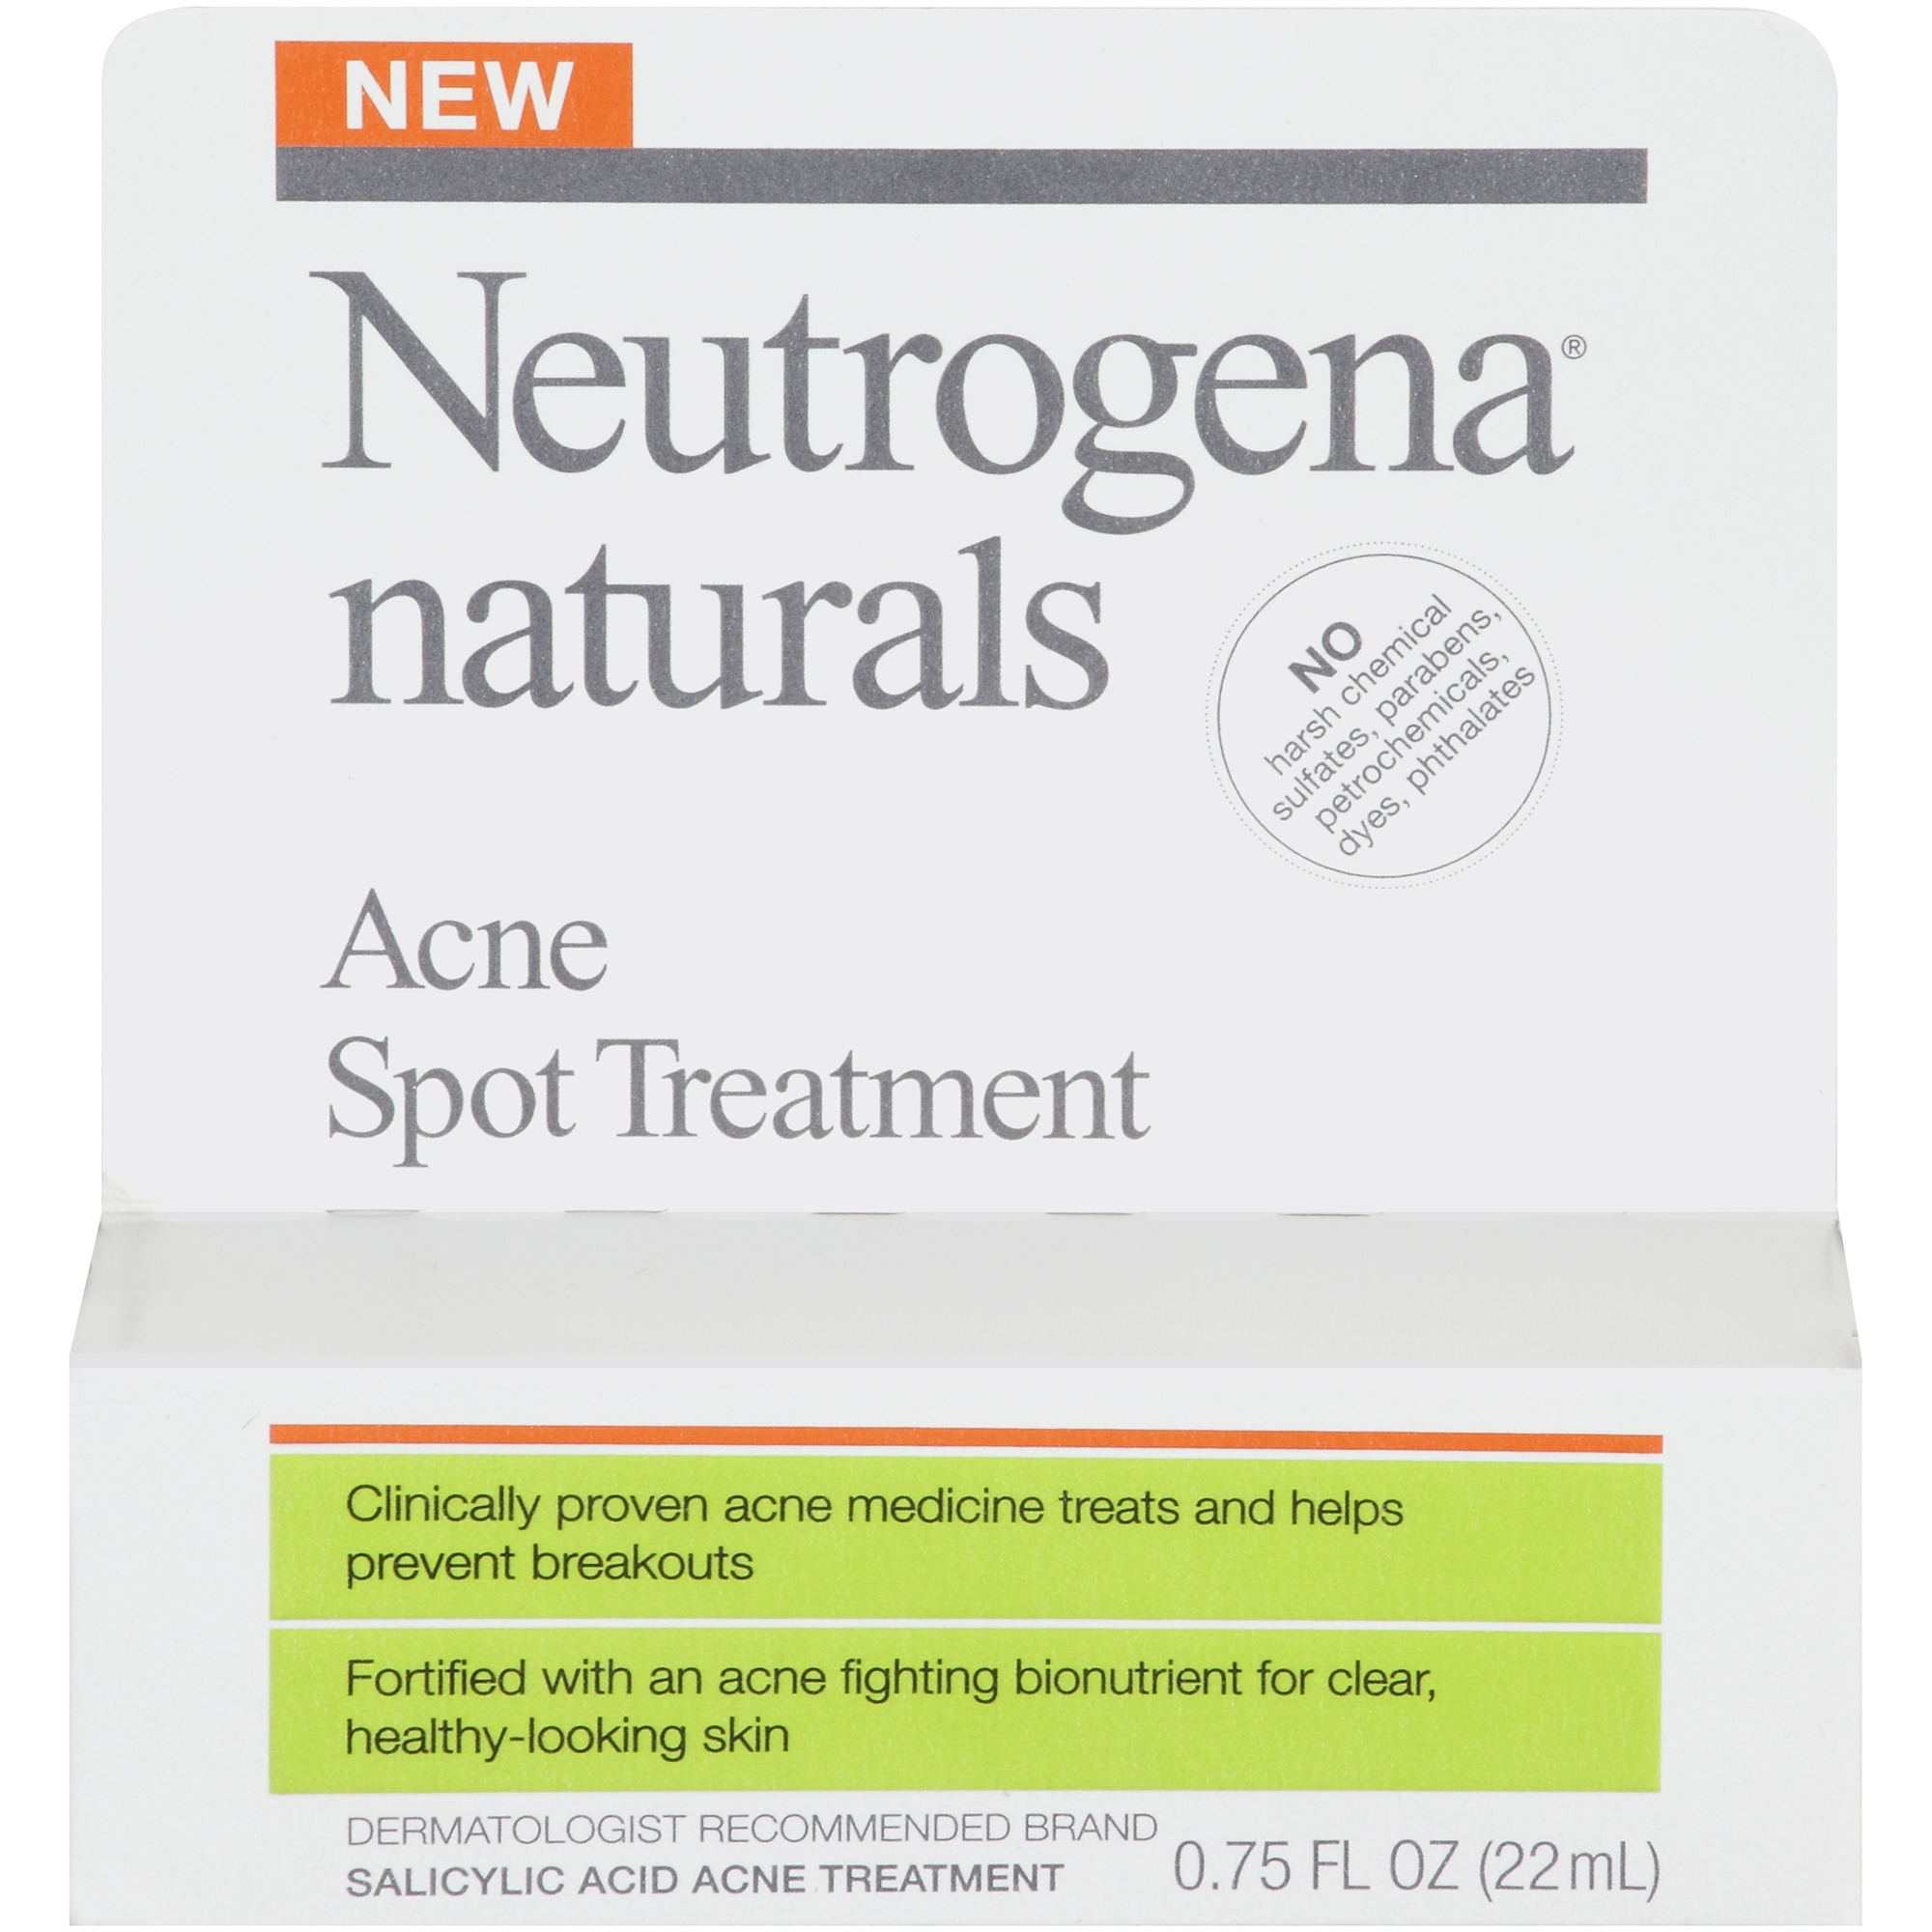 Neutrogena Naturals Acne Spot Treatment, 0.75 oz